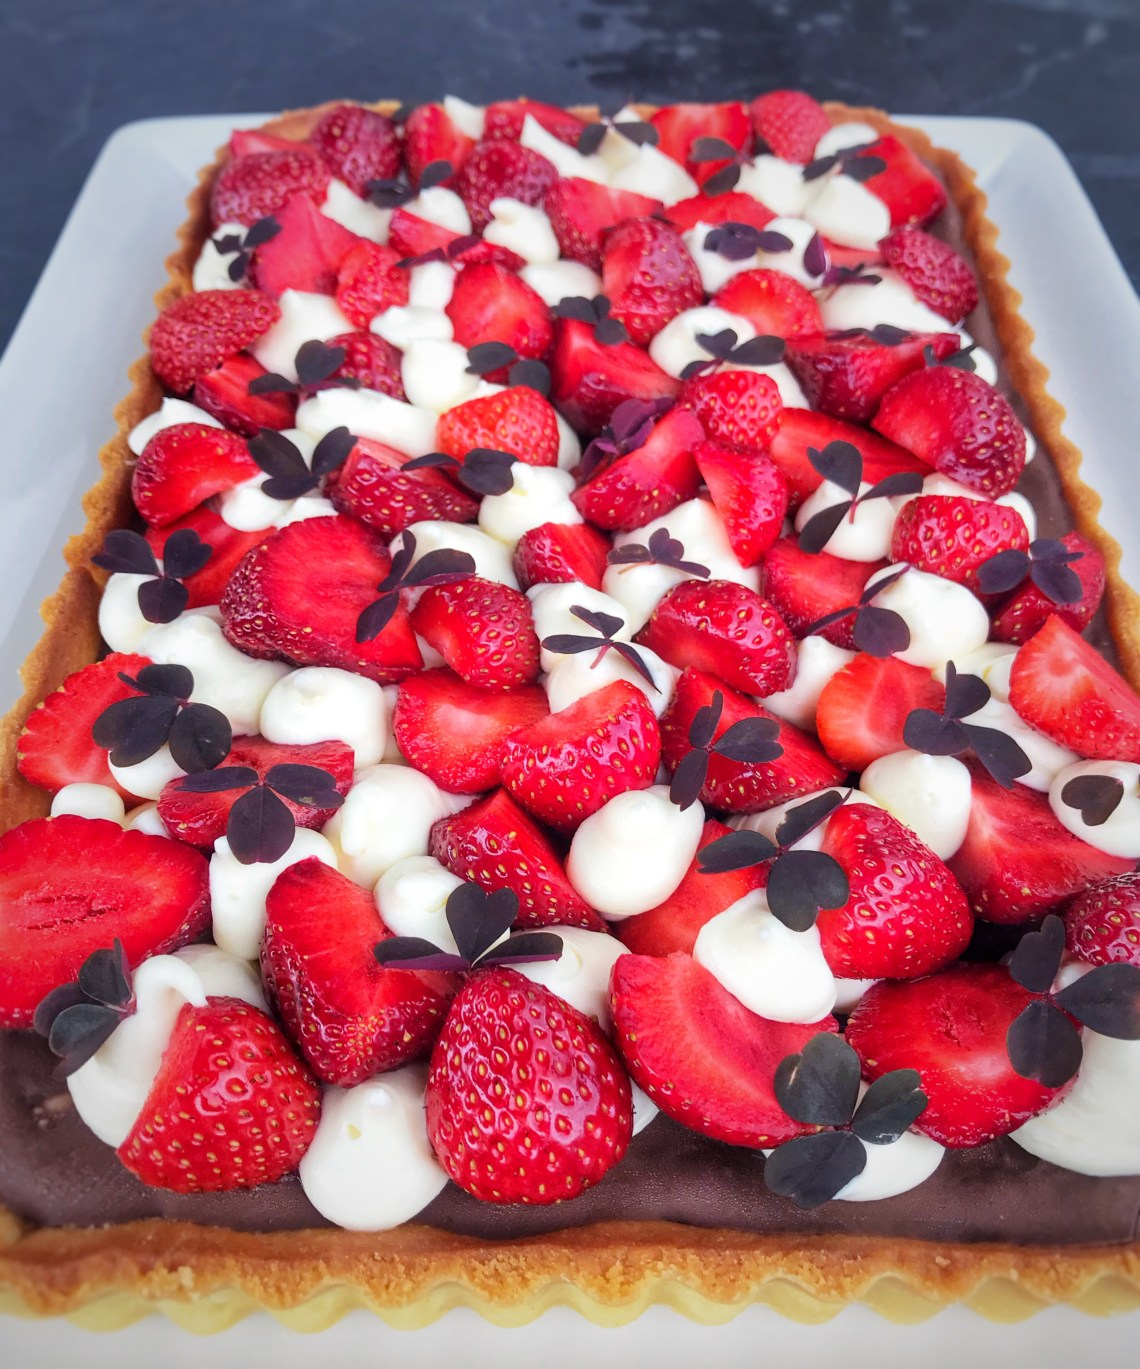 Danish strawberry cake. The ultimate Danish cake classic shortcrust and remonce base, rich chocolate, vanilla mousse cream and fresh strawberries